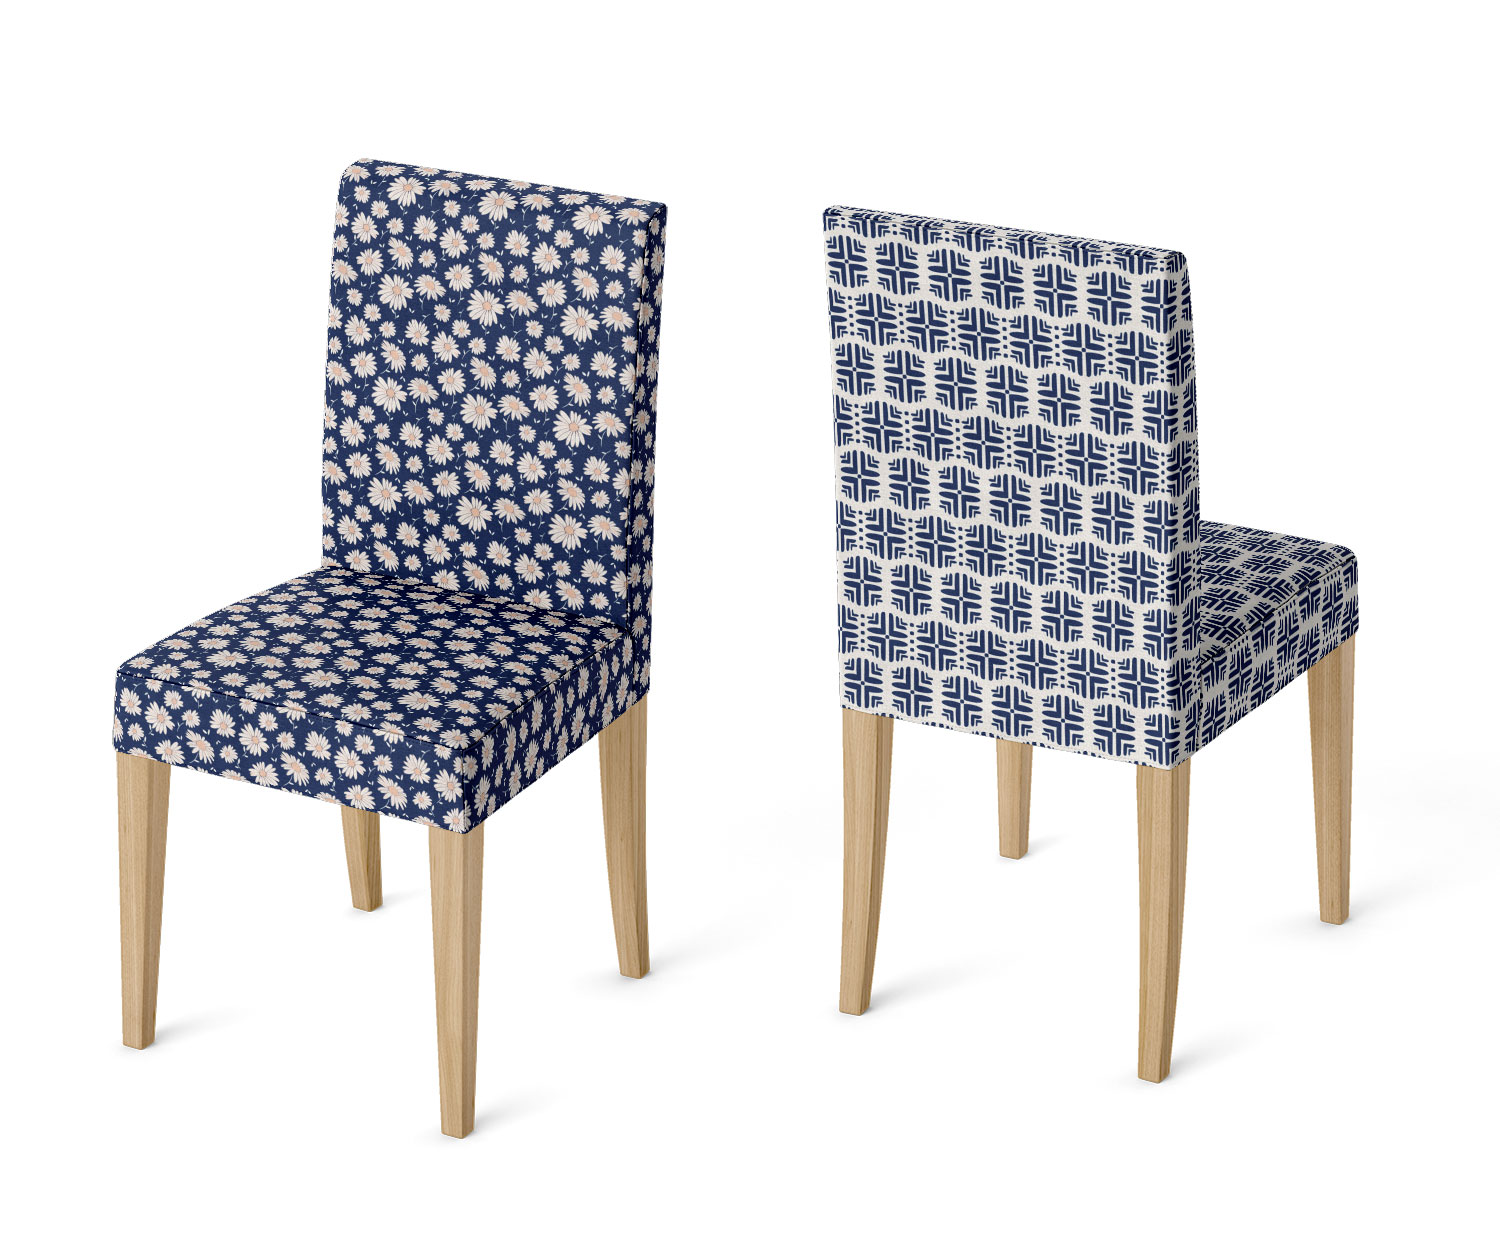 darling daisy chairs